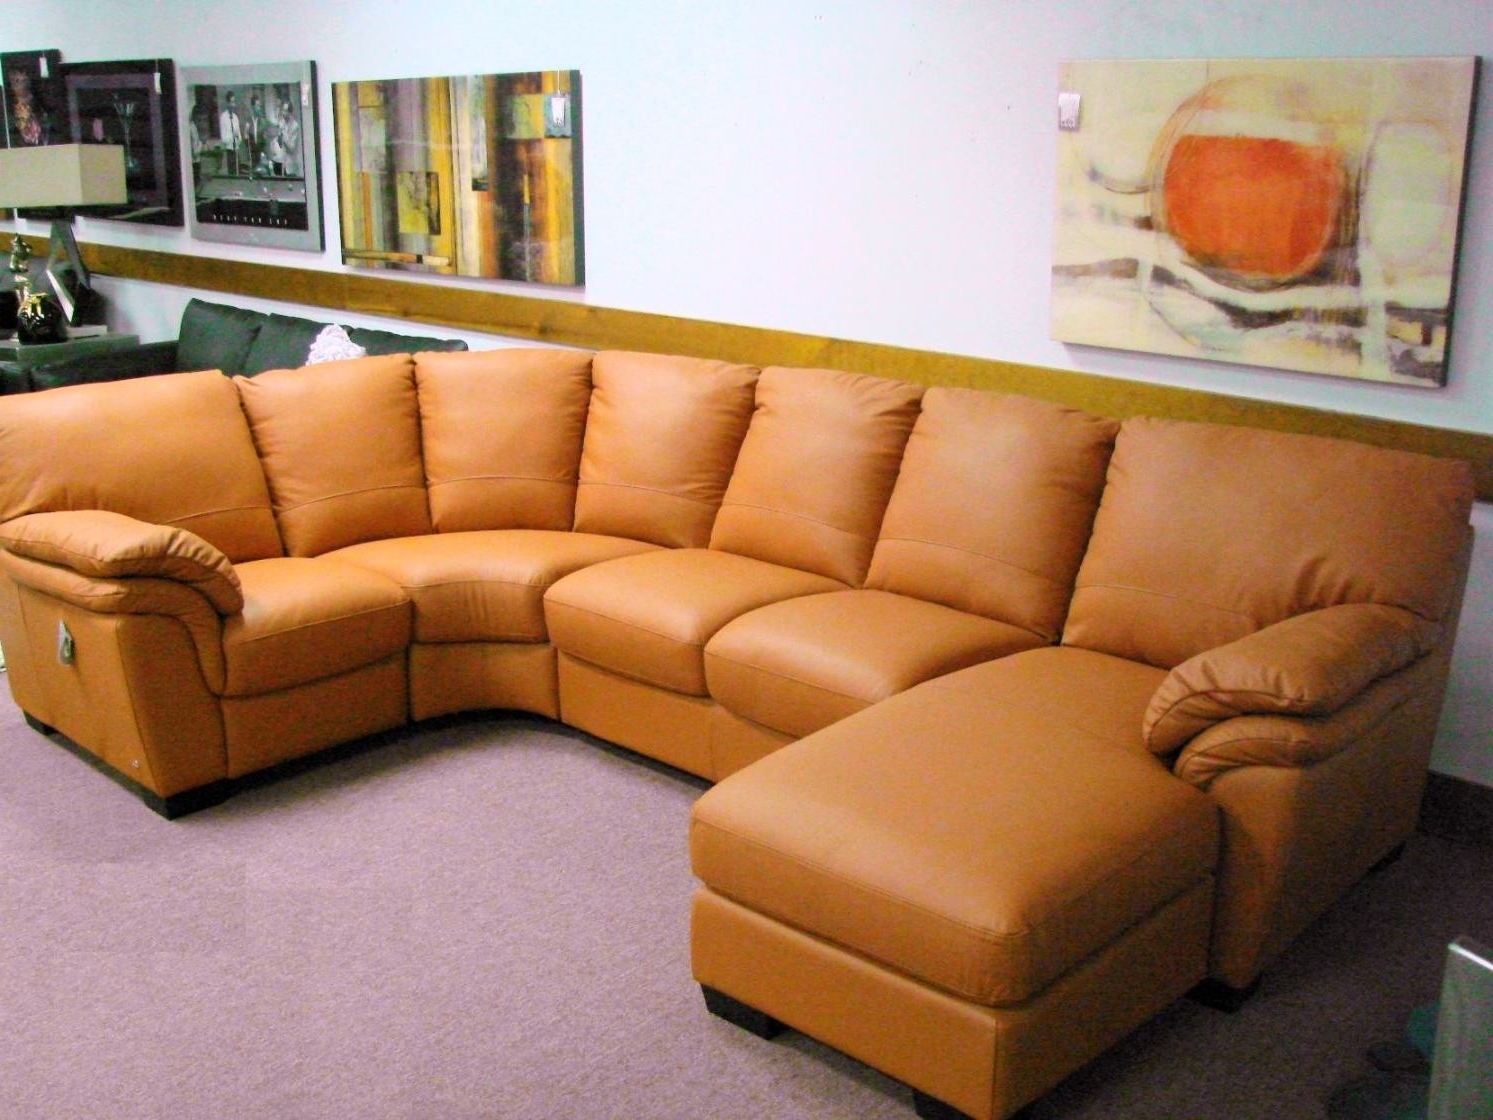 Fresh Light Tan Leather Couch 16 In Modern Sofa Inspiration With With Regard To Trendy Light Tan Leather Sofas (View 5 of 15)